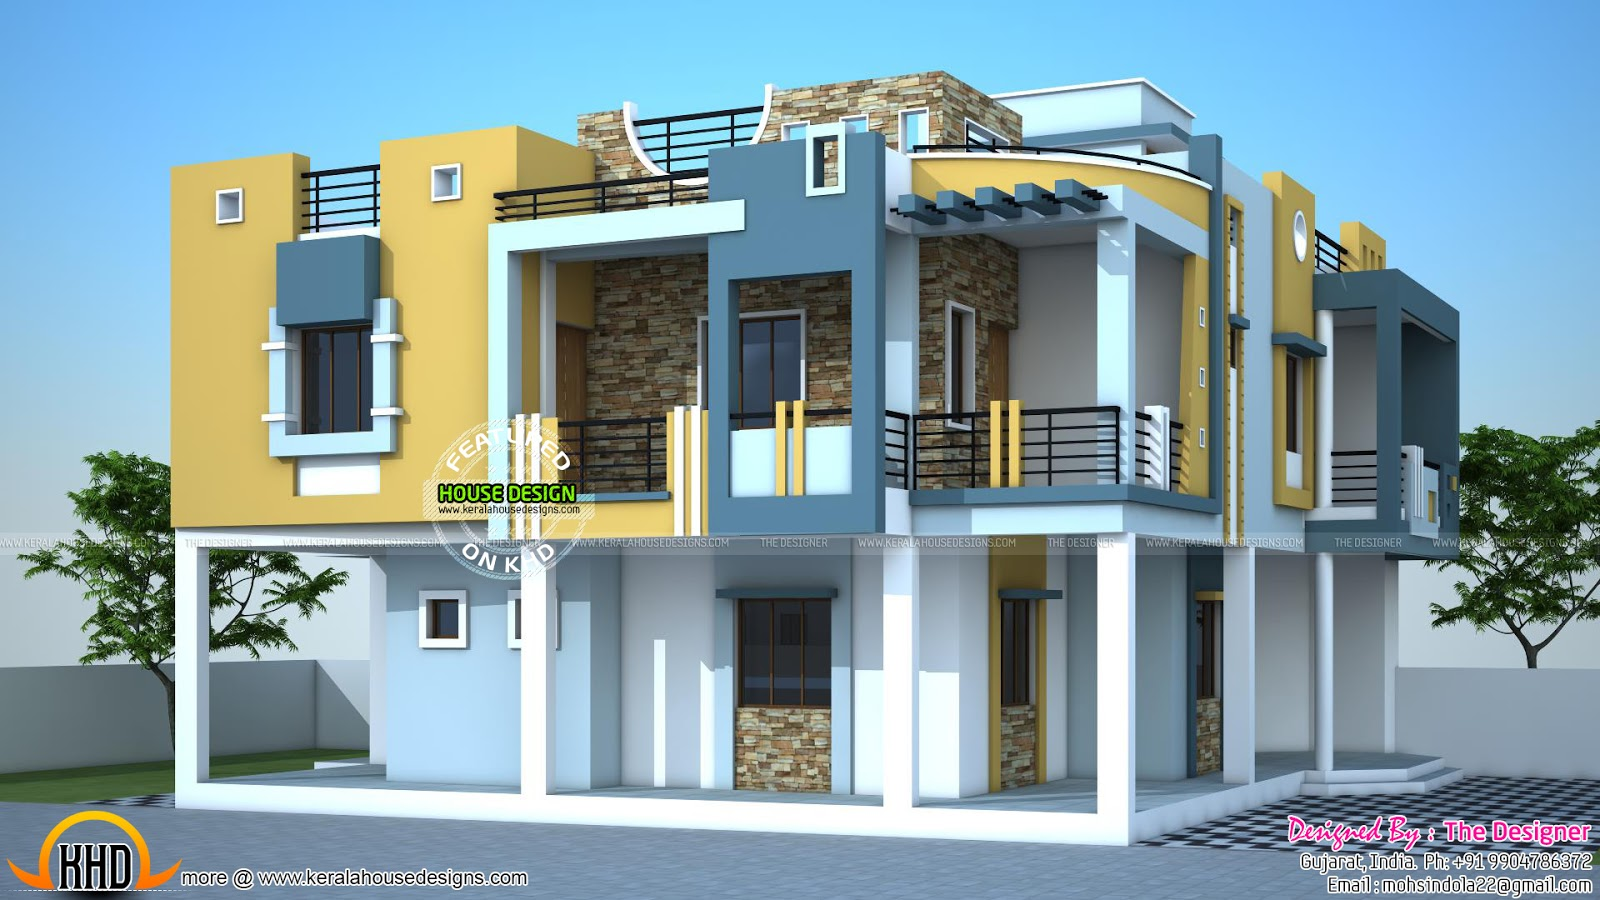 Modern duplex house in india kerala home design and for Front view of duplex house in india